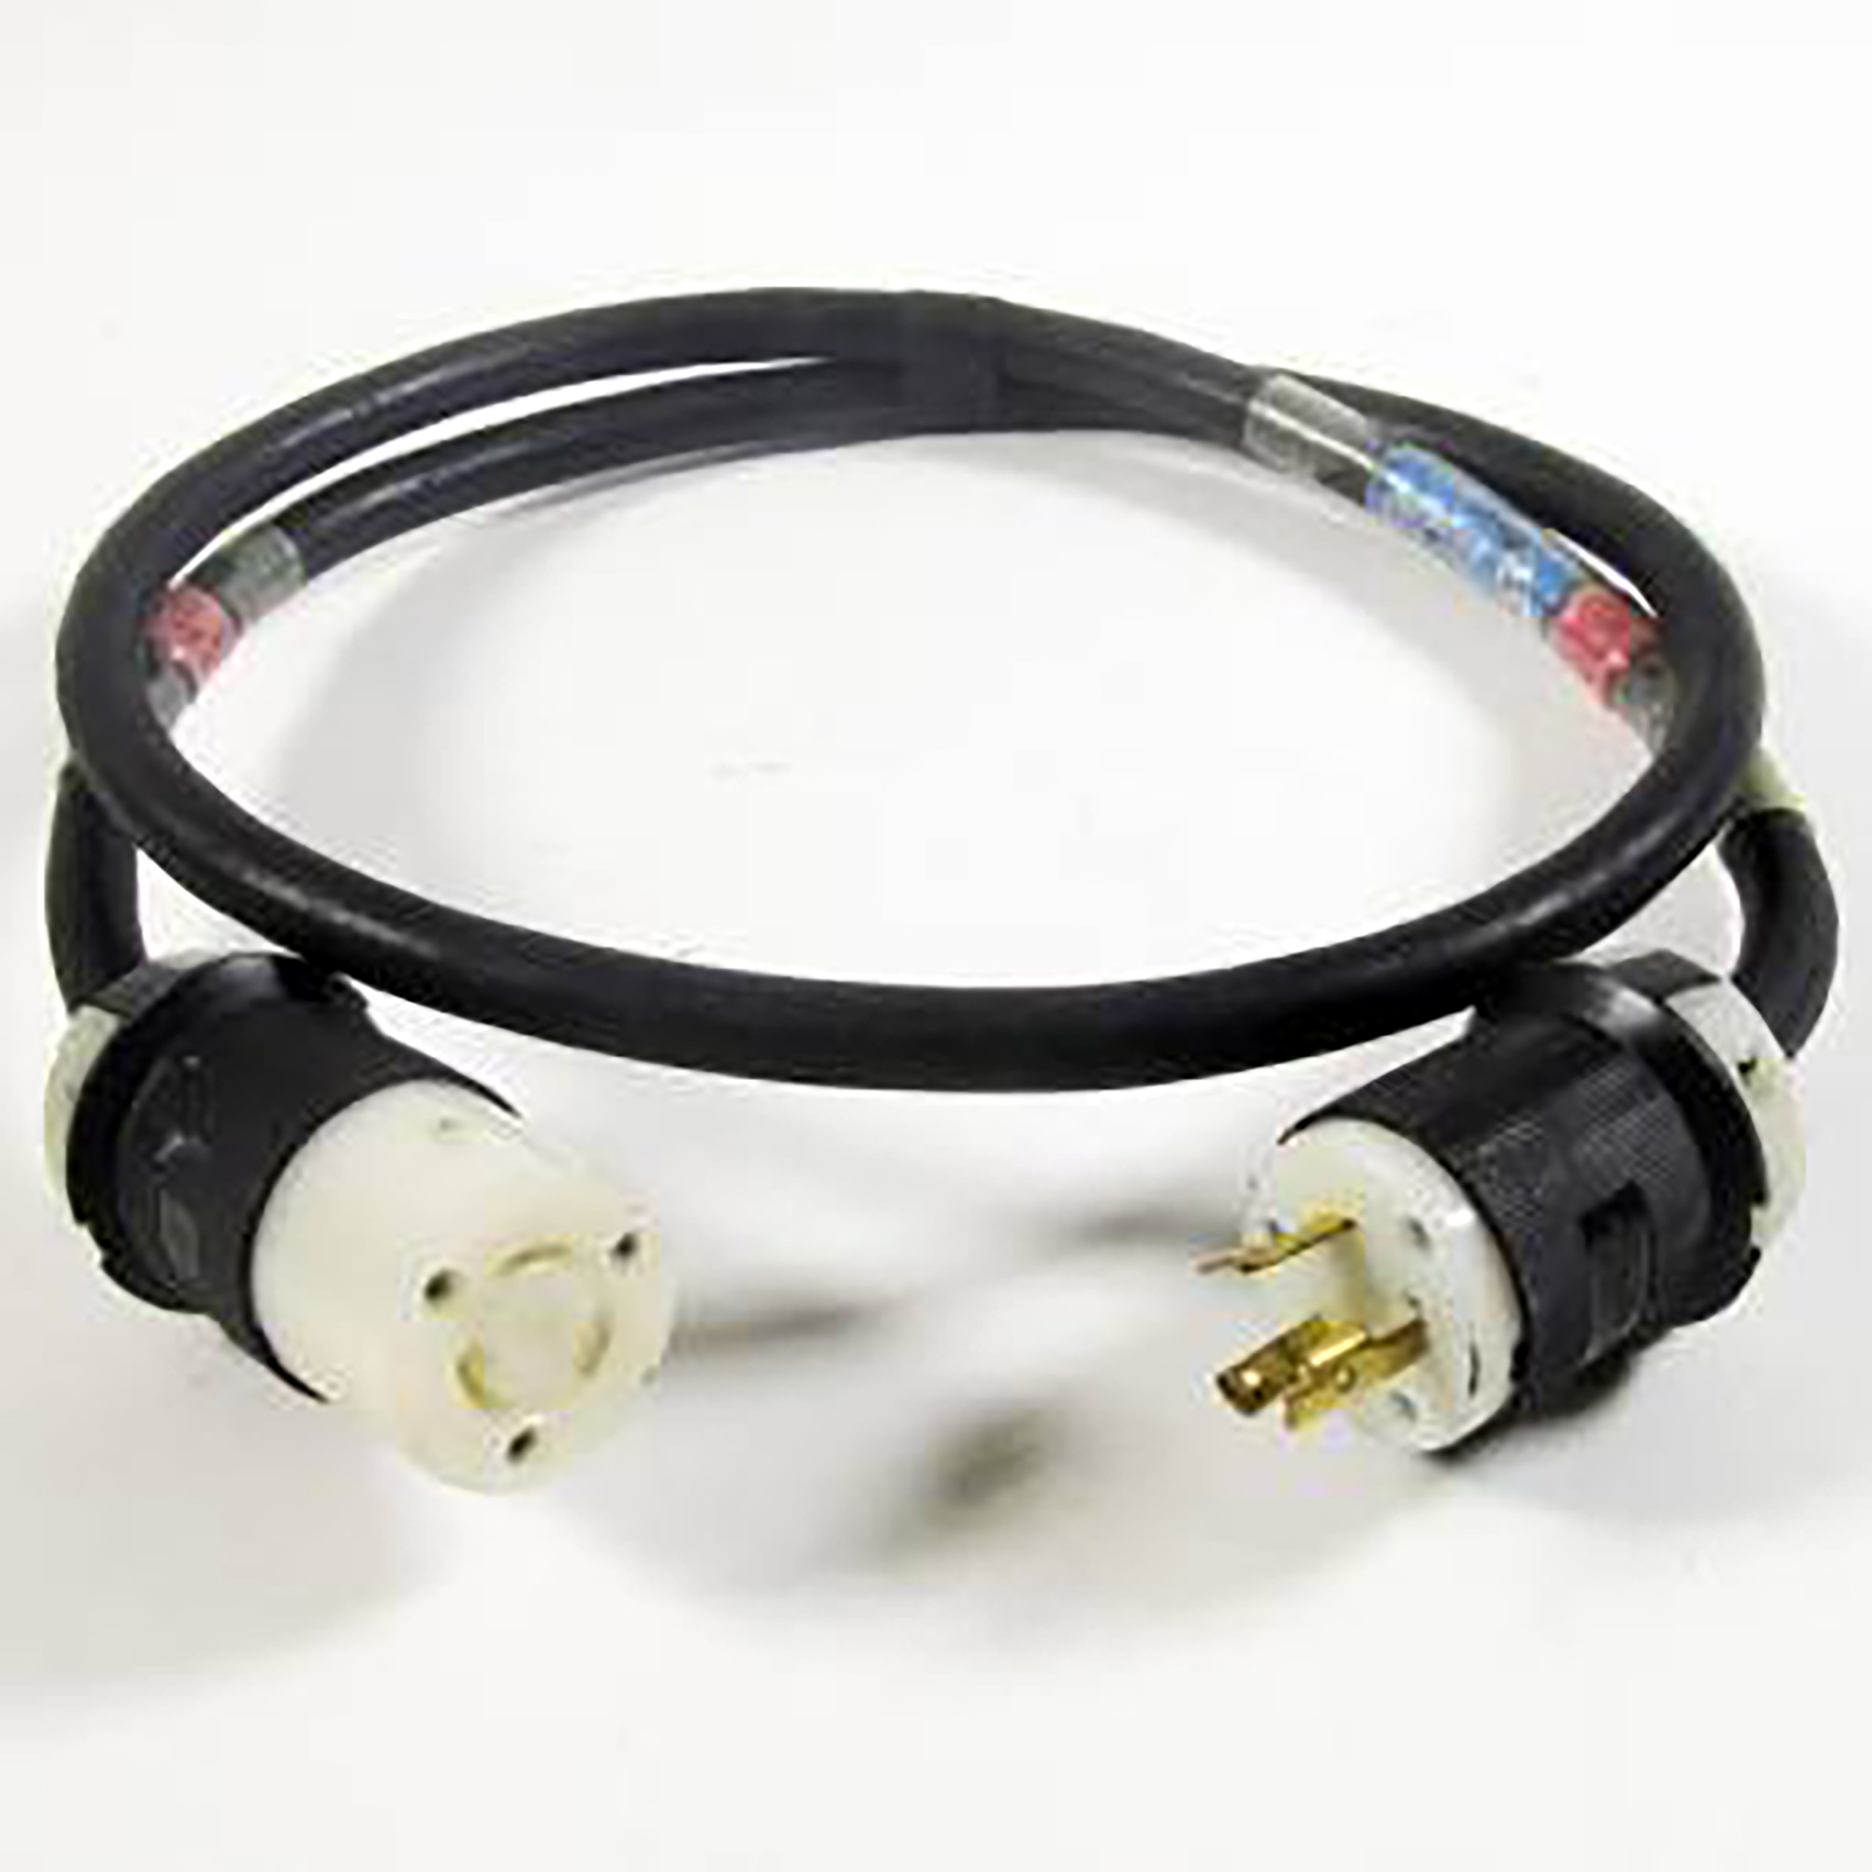 L620-twistlock-cable-for-purchase.jpg